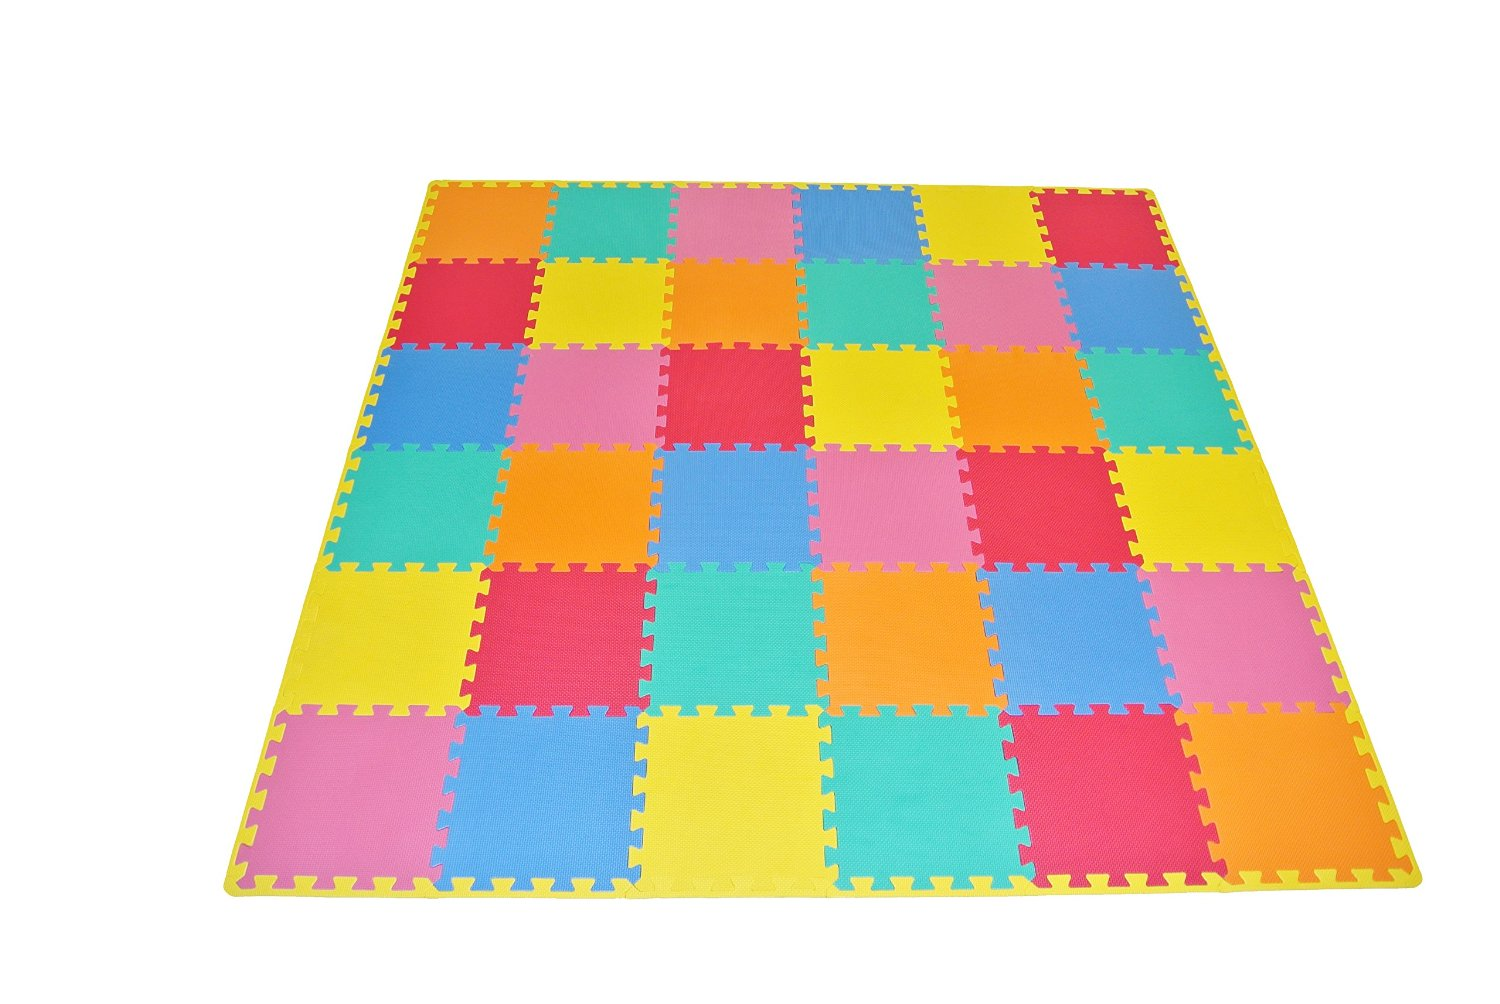 online foam best for kids mats ireland play sale mat prices in floor